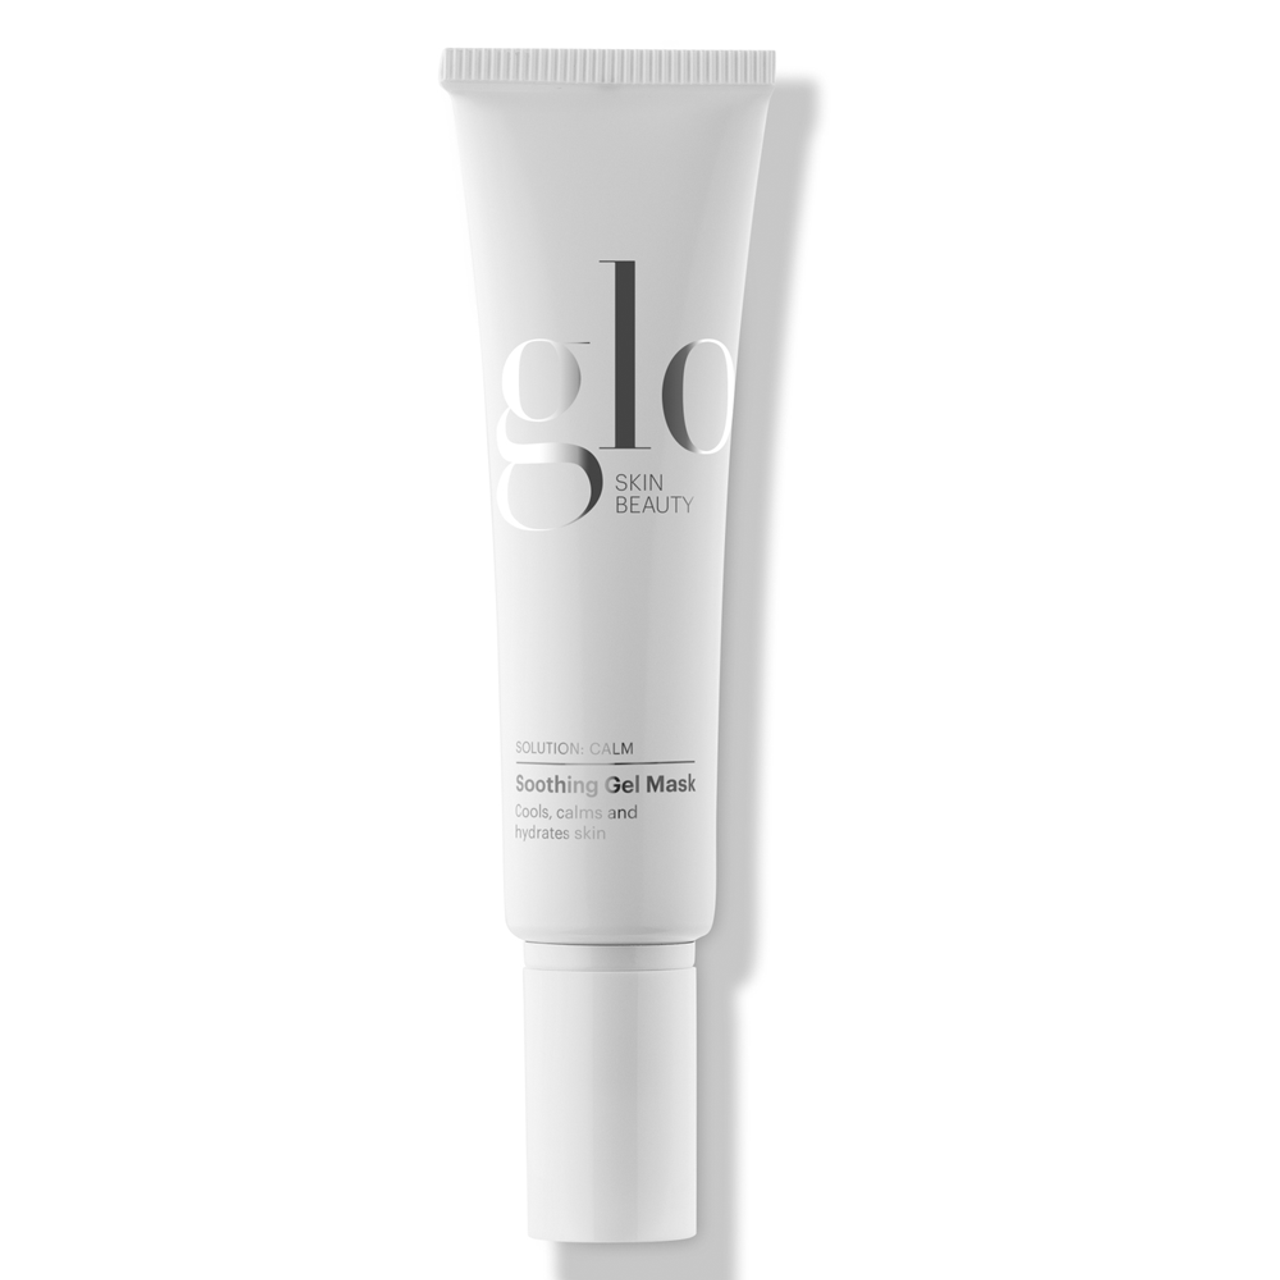 glo Skin Beauty Soothing Gel Mask